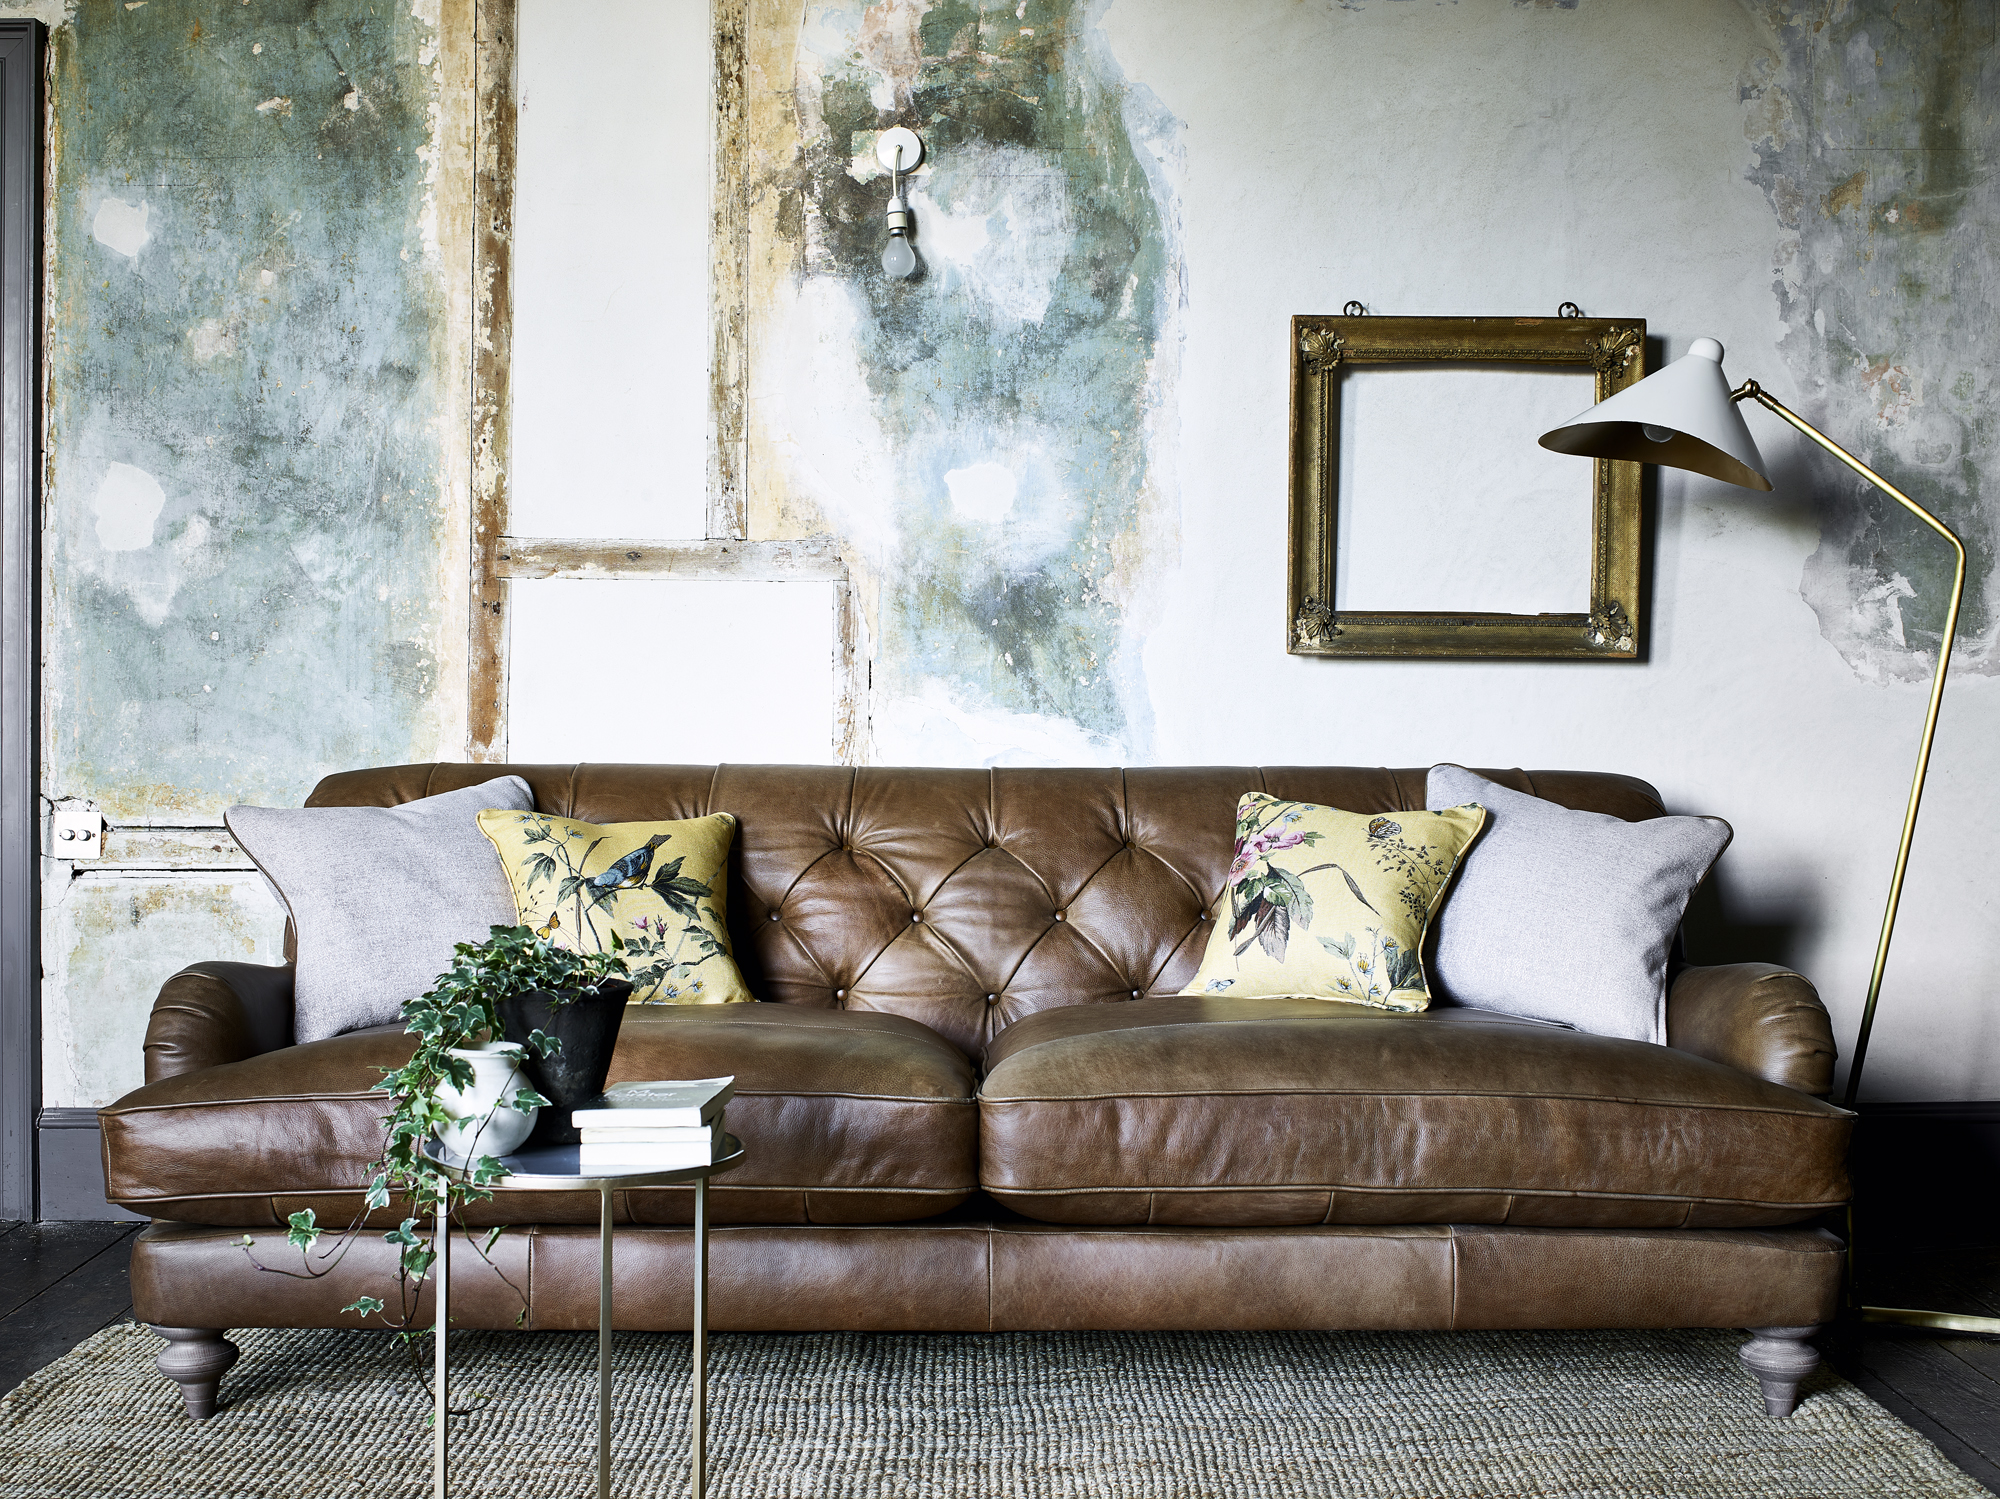 Coach House Is An Exclusive Collection Of Beautiful Timeless Upholstery  Using The Best Natural Leathers And Fabrics To Create The Perfect And Most  ...